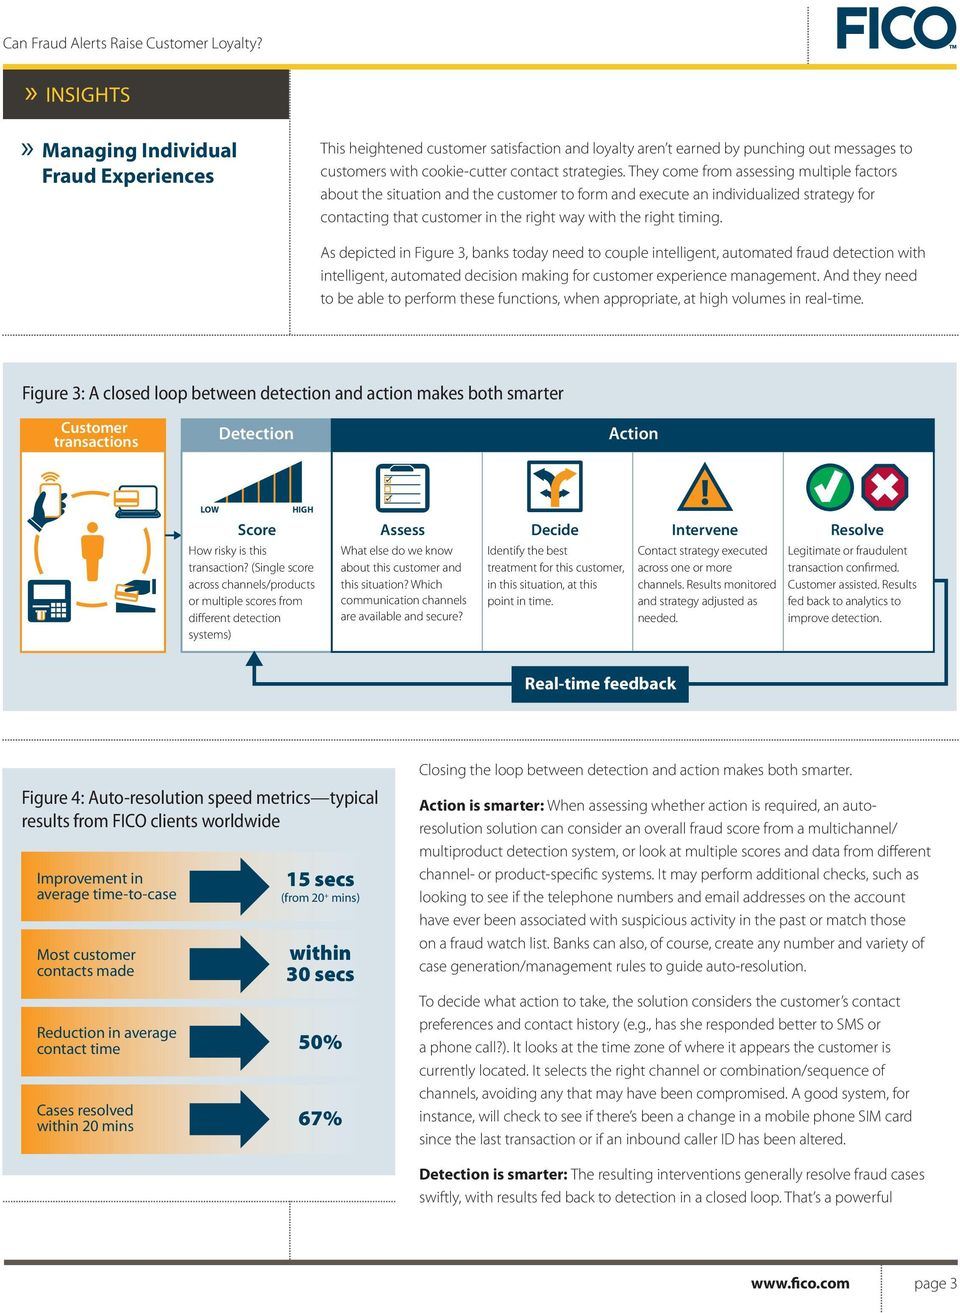 As depicted in Figure 3, banks today need to couple intelligent, automated fraud detection with intelligent, automated decision making for customer experience management.